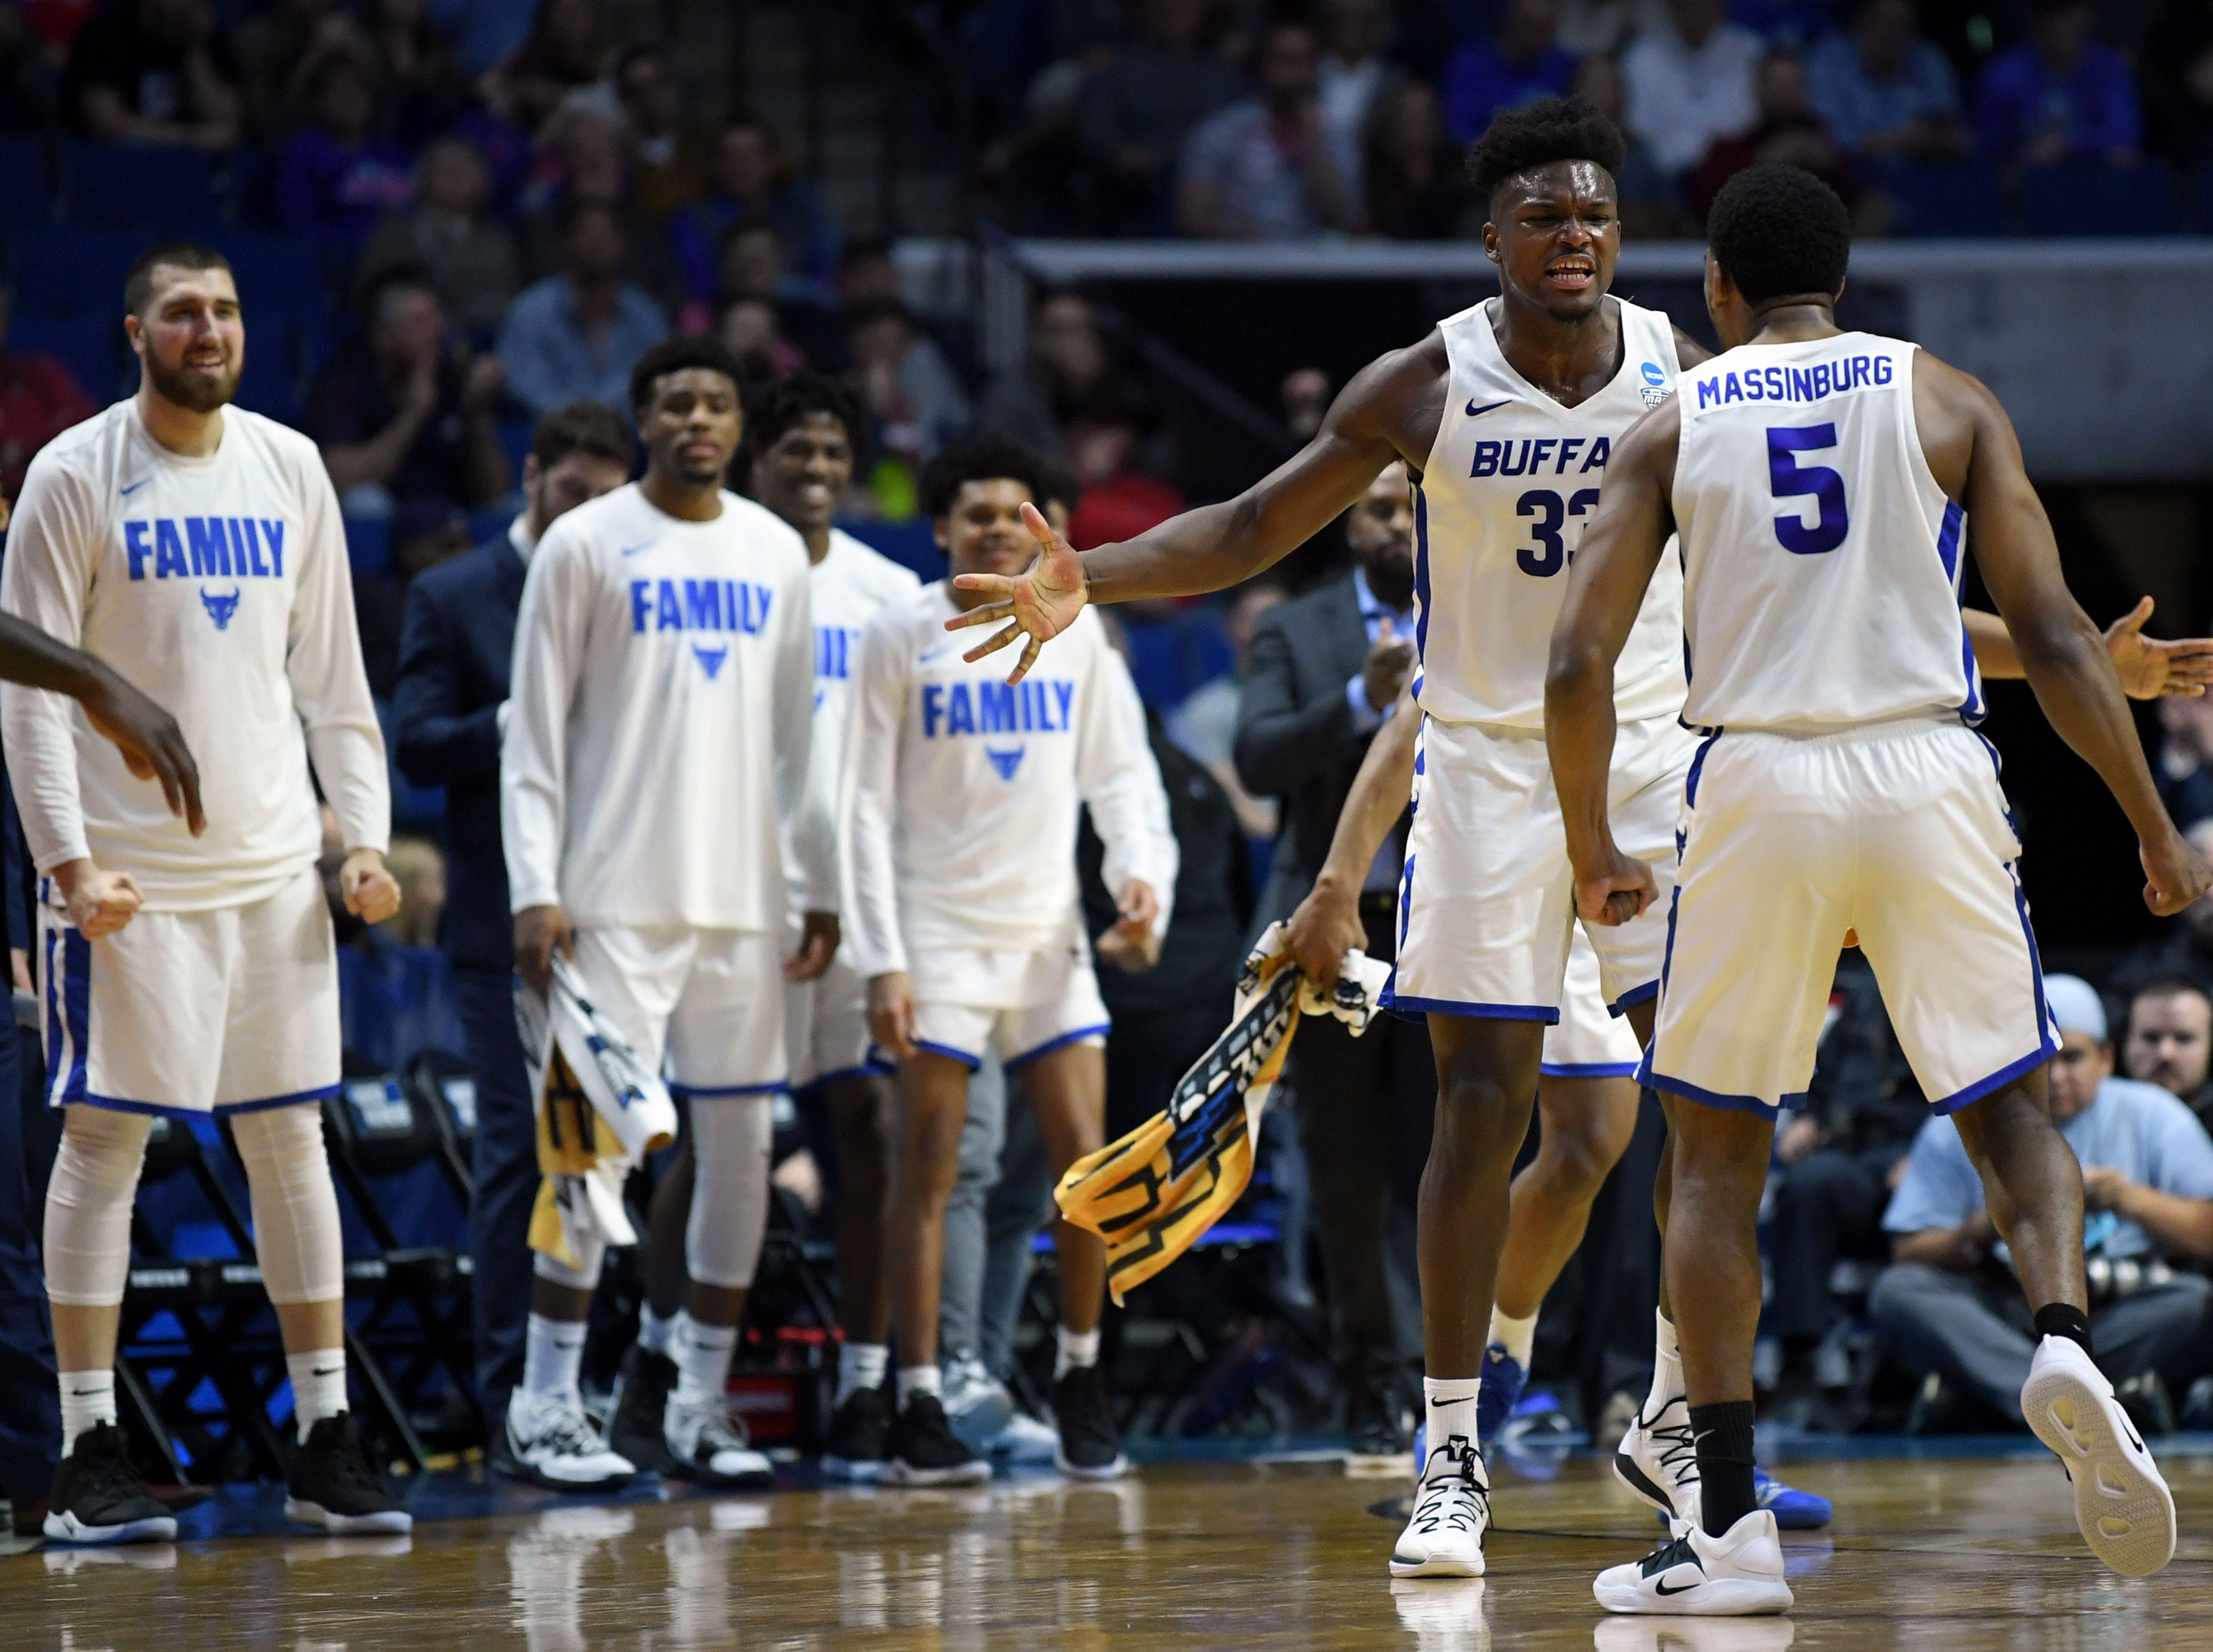 TULSA, OKLAHOMA - MARCH 22:  Nick Perkins #33 and CJ Massinburg #5 of the Buffalo Bulls celebrate after a time out is called during the first half of the first round game of the 2019 NCAA Men's Basketball Tournament against the Arizona State Sun Devils at BOK Center on March 22, 2019 in Tulsa, Oklahoma. (Photo by Harry How/Getty Images)